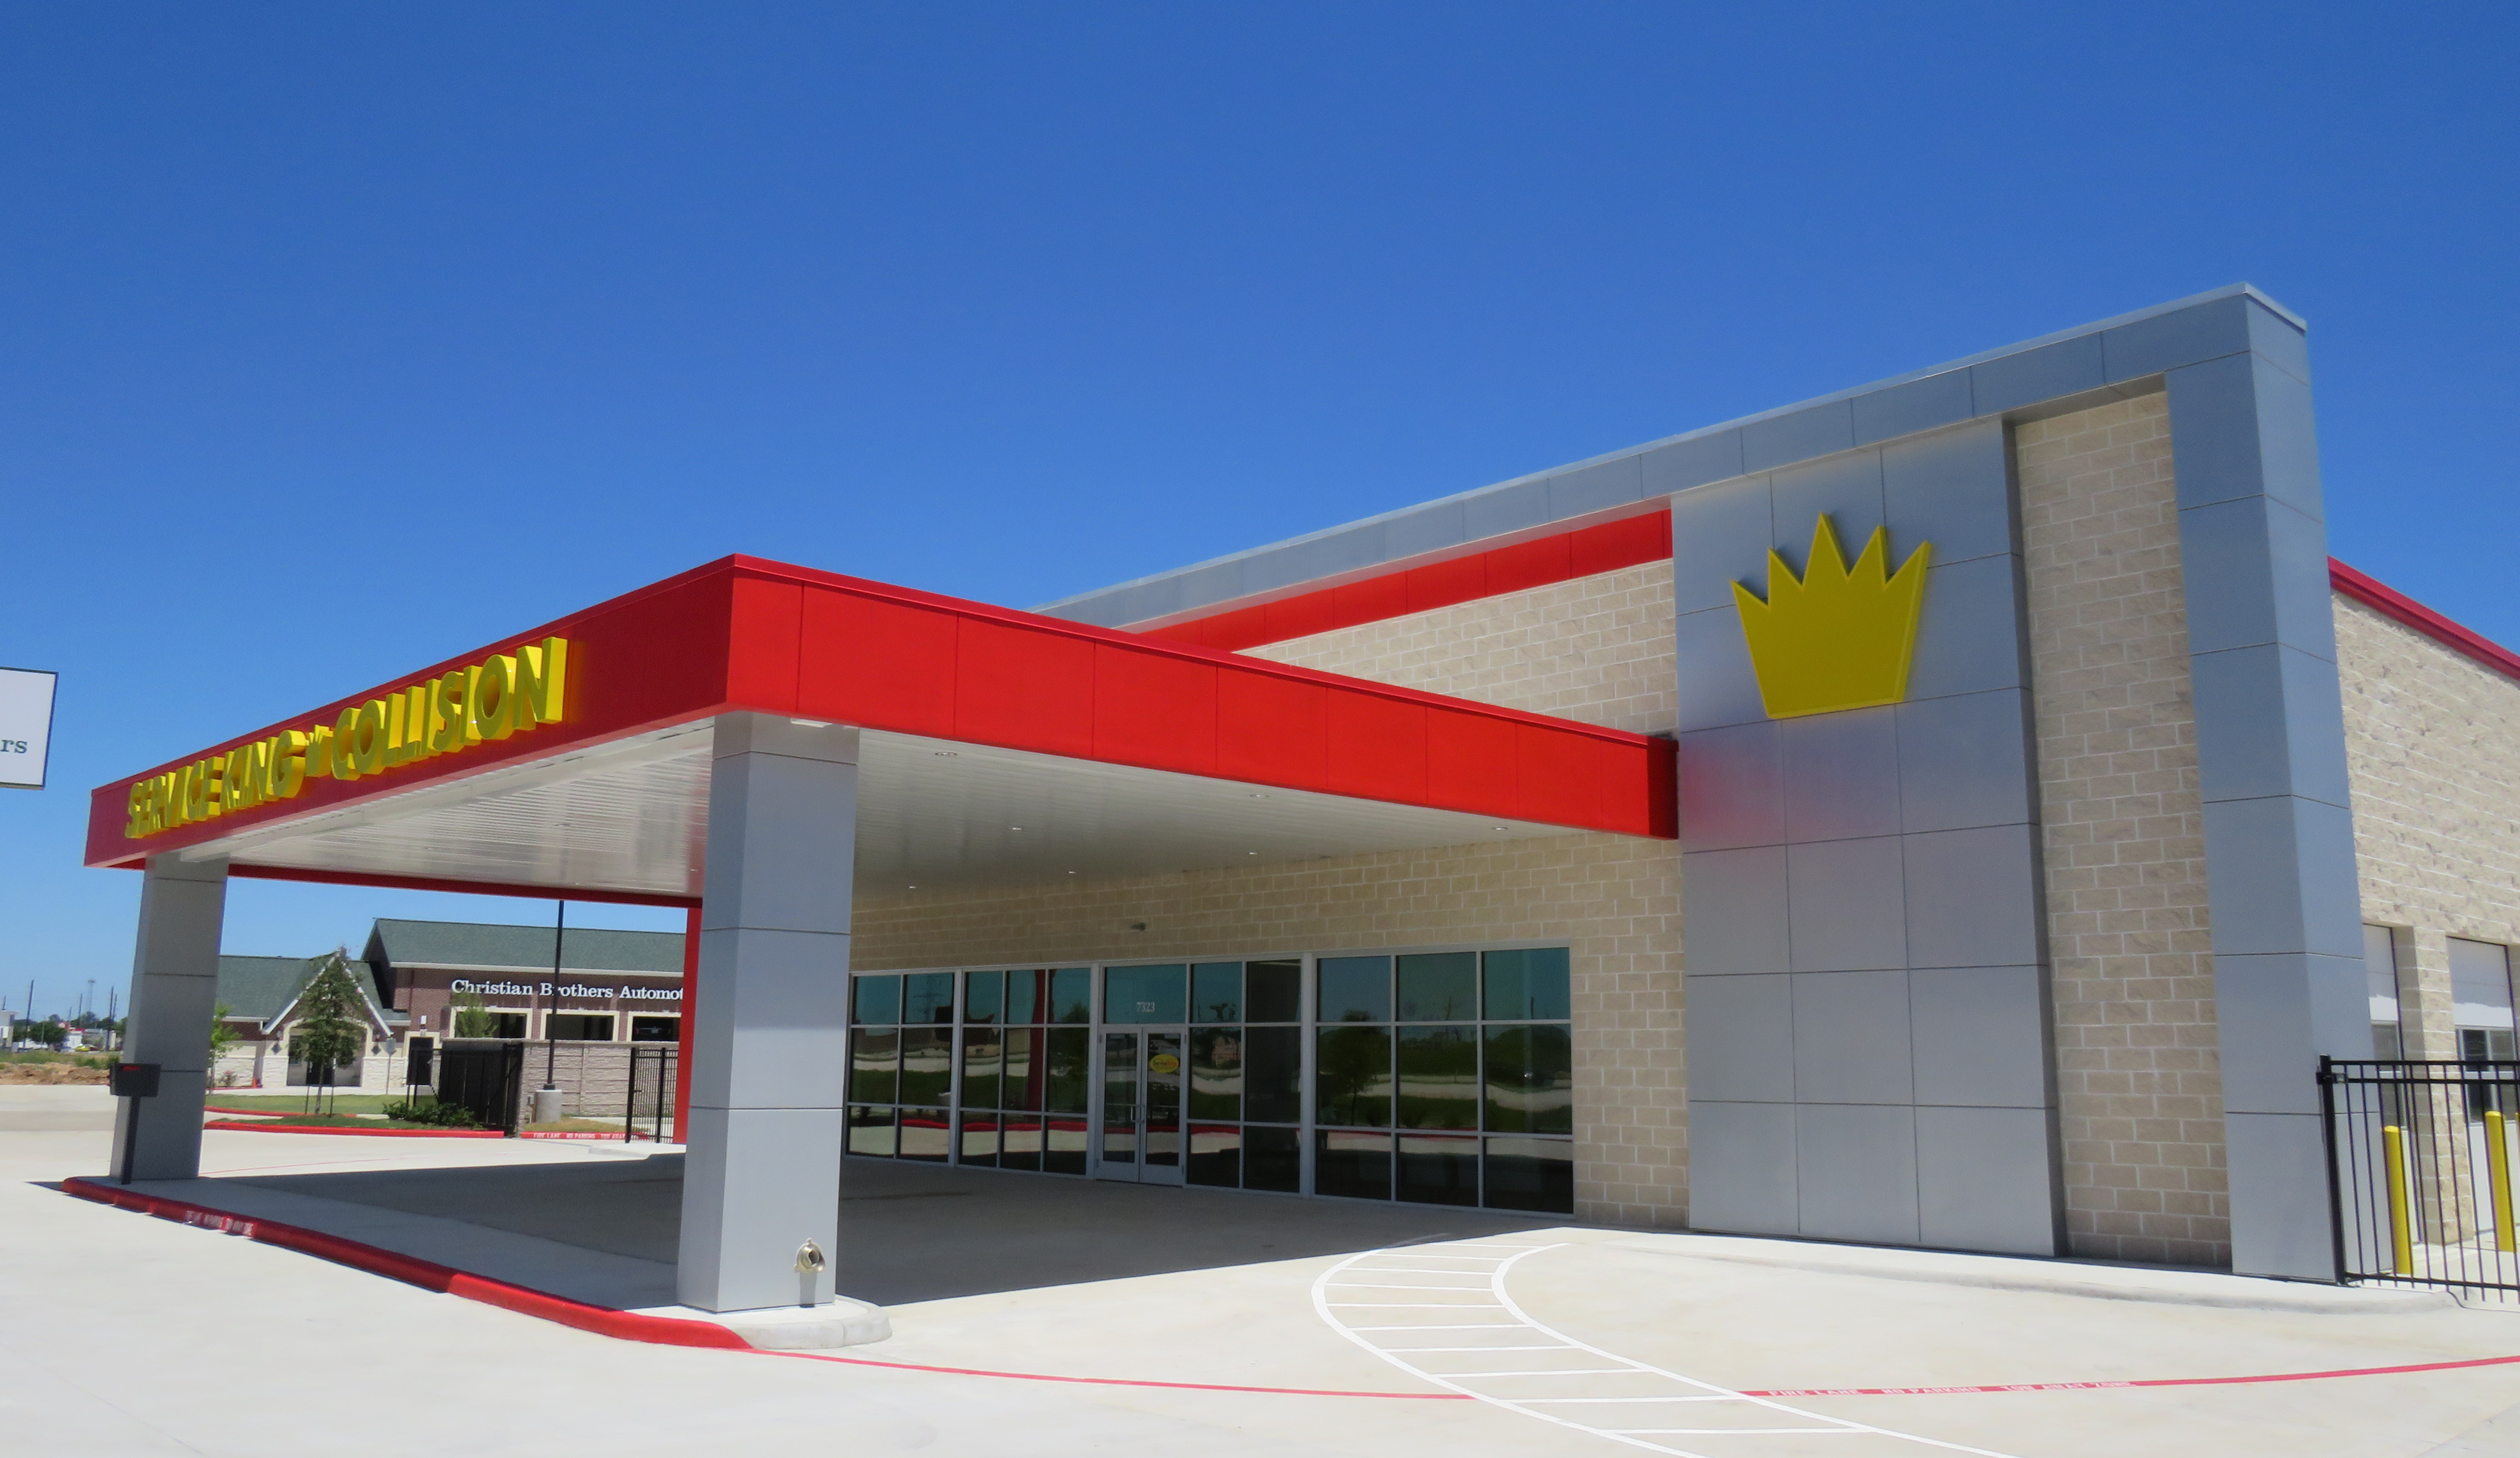 Service King Achieves a Metallic Facade Without ACM